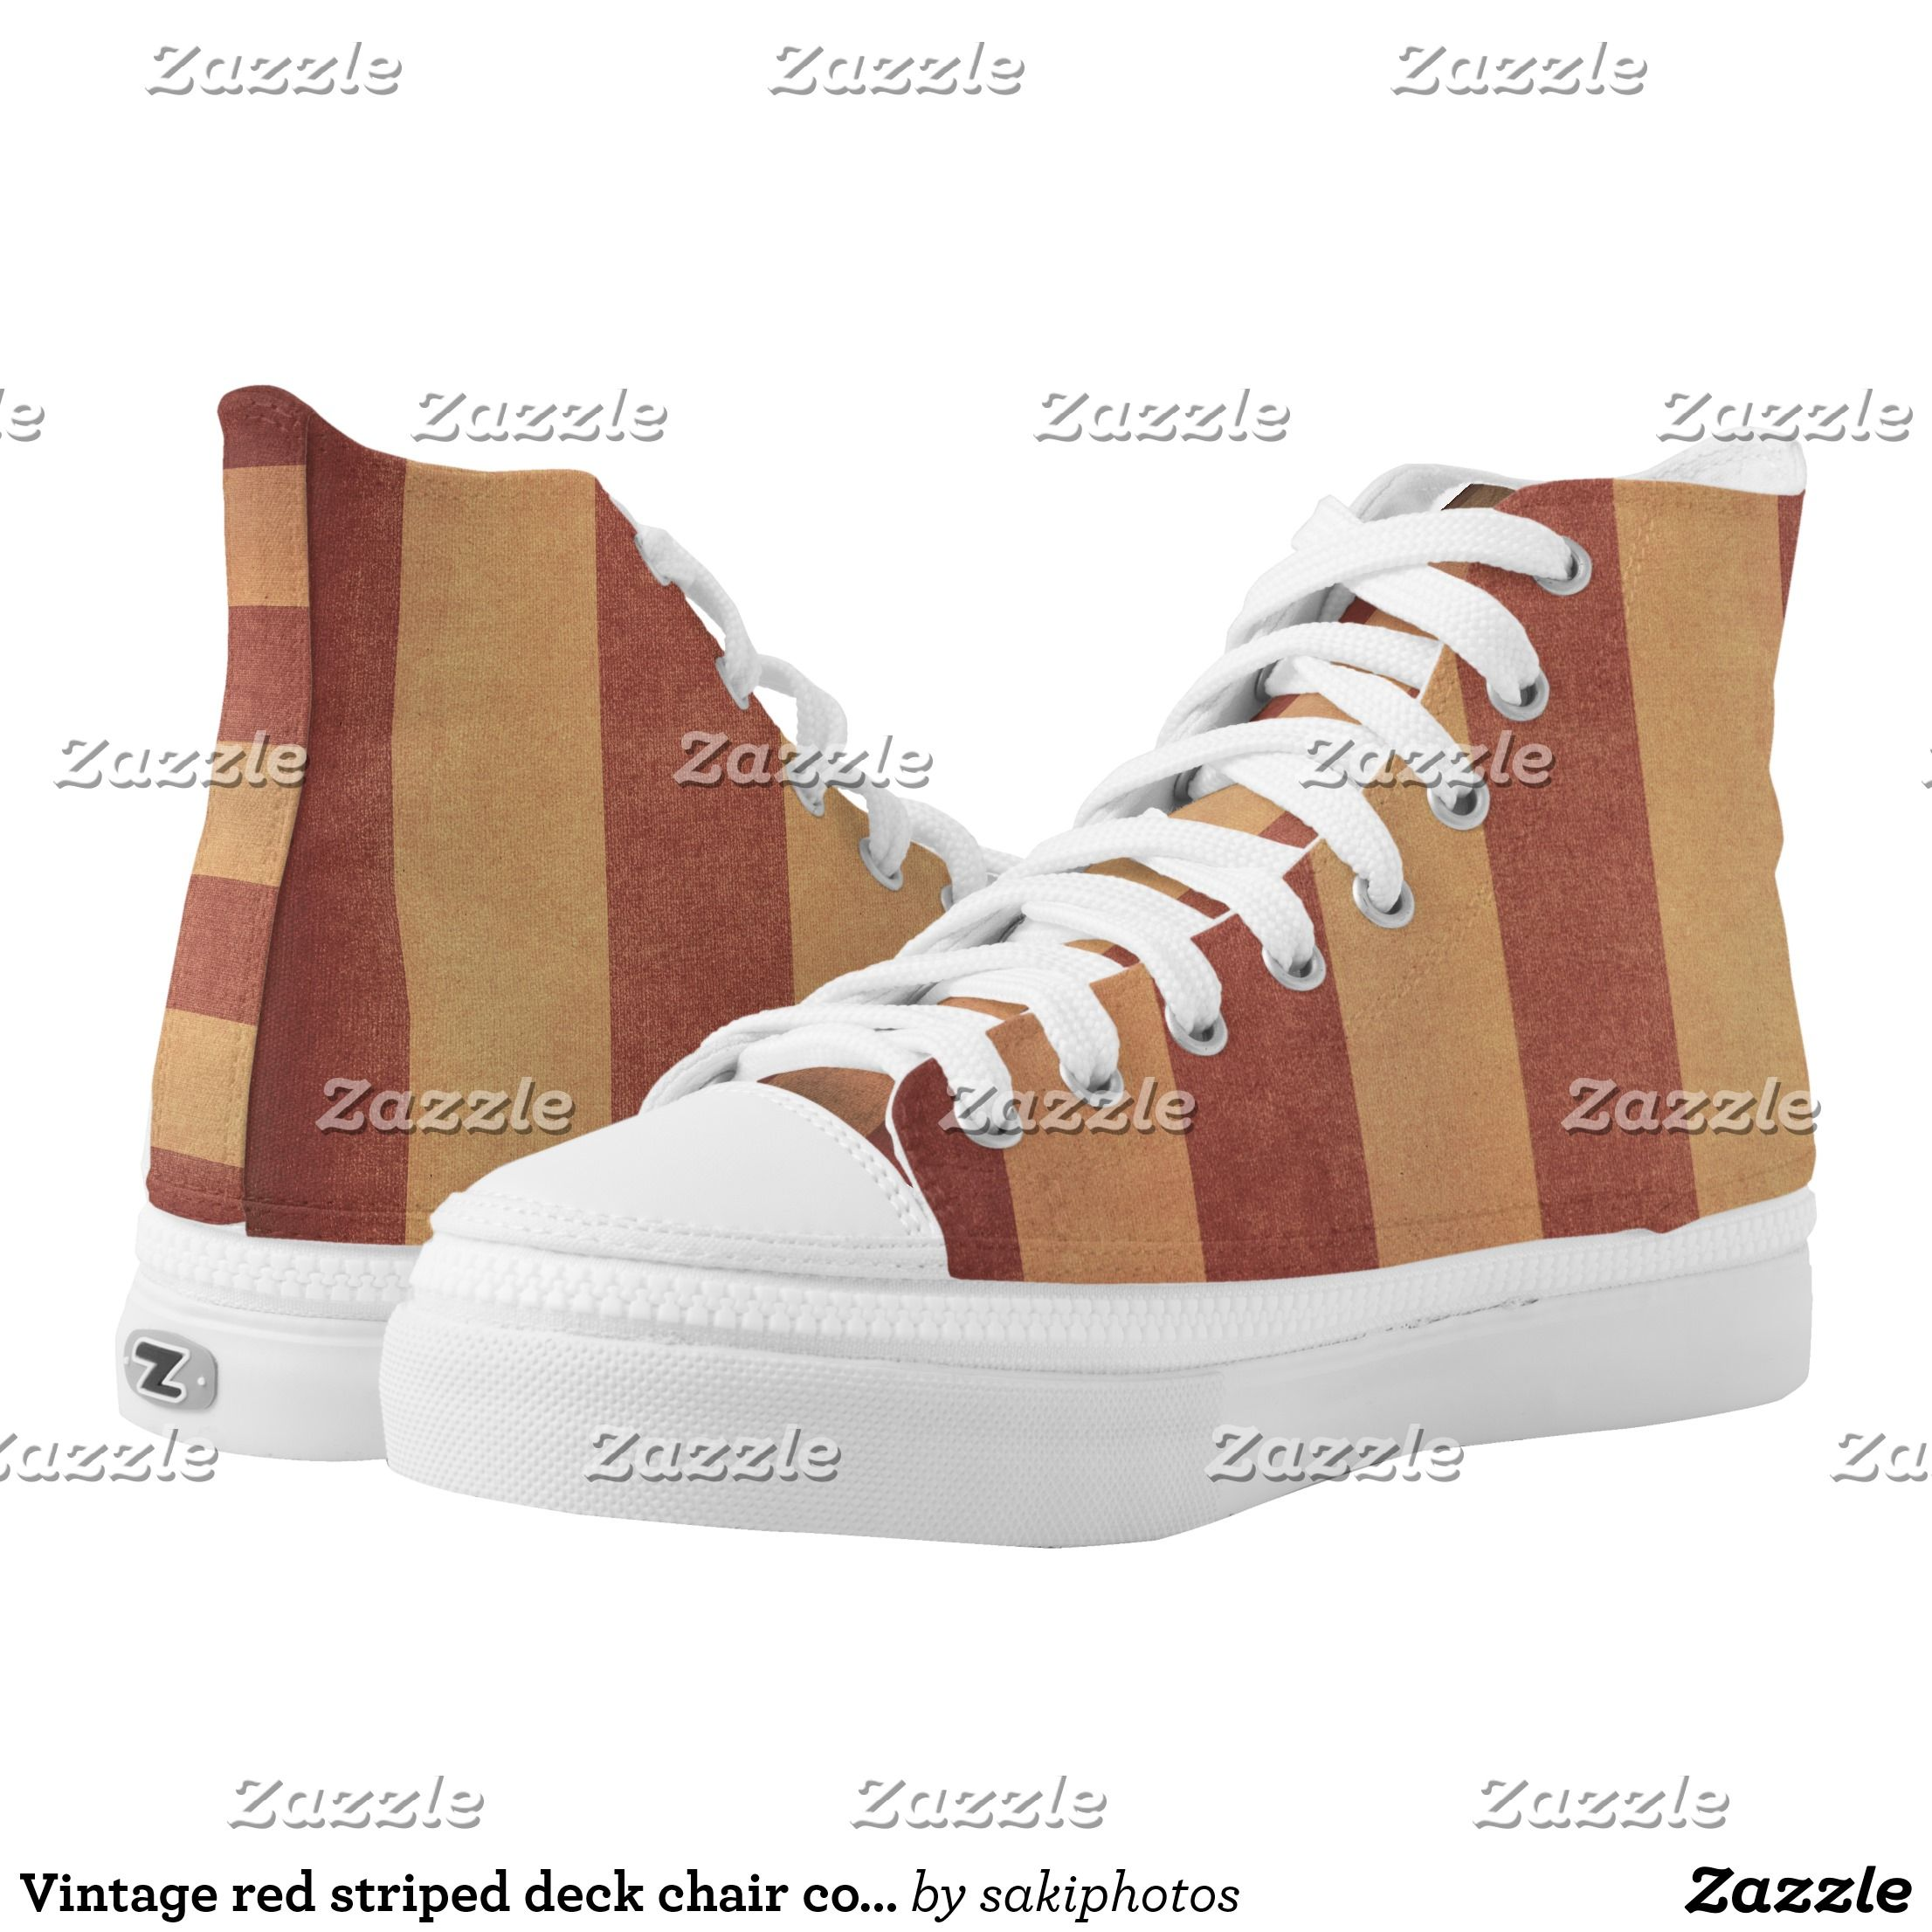 Vintage Red Striped Deck Chair Cover High Top Sneakers Zazzle Com With Images Top Sneakers High Top Sneakers Sneakers